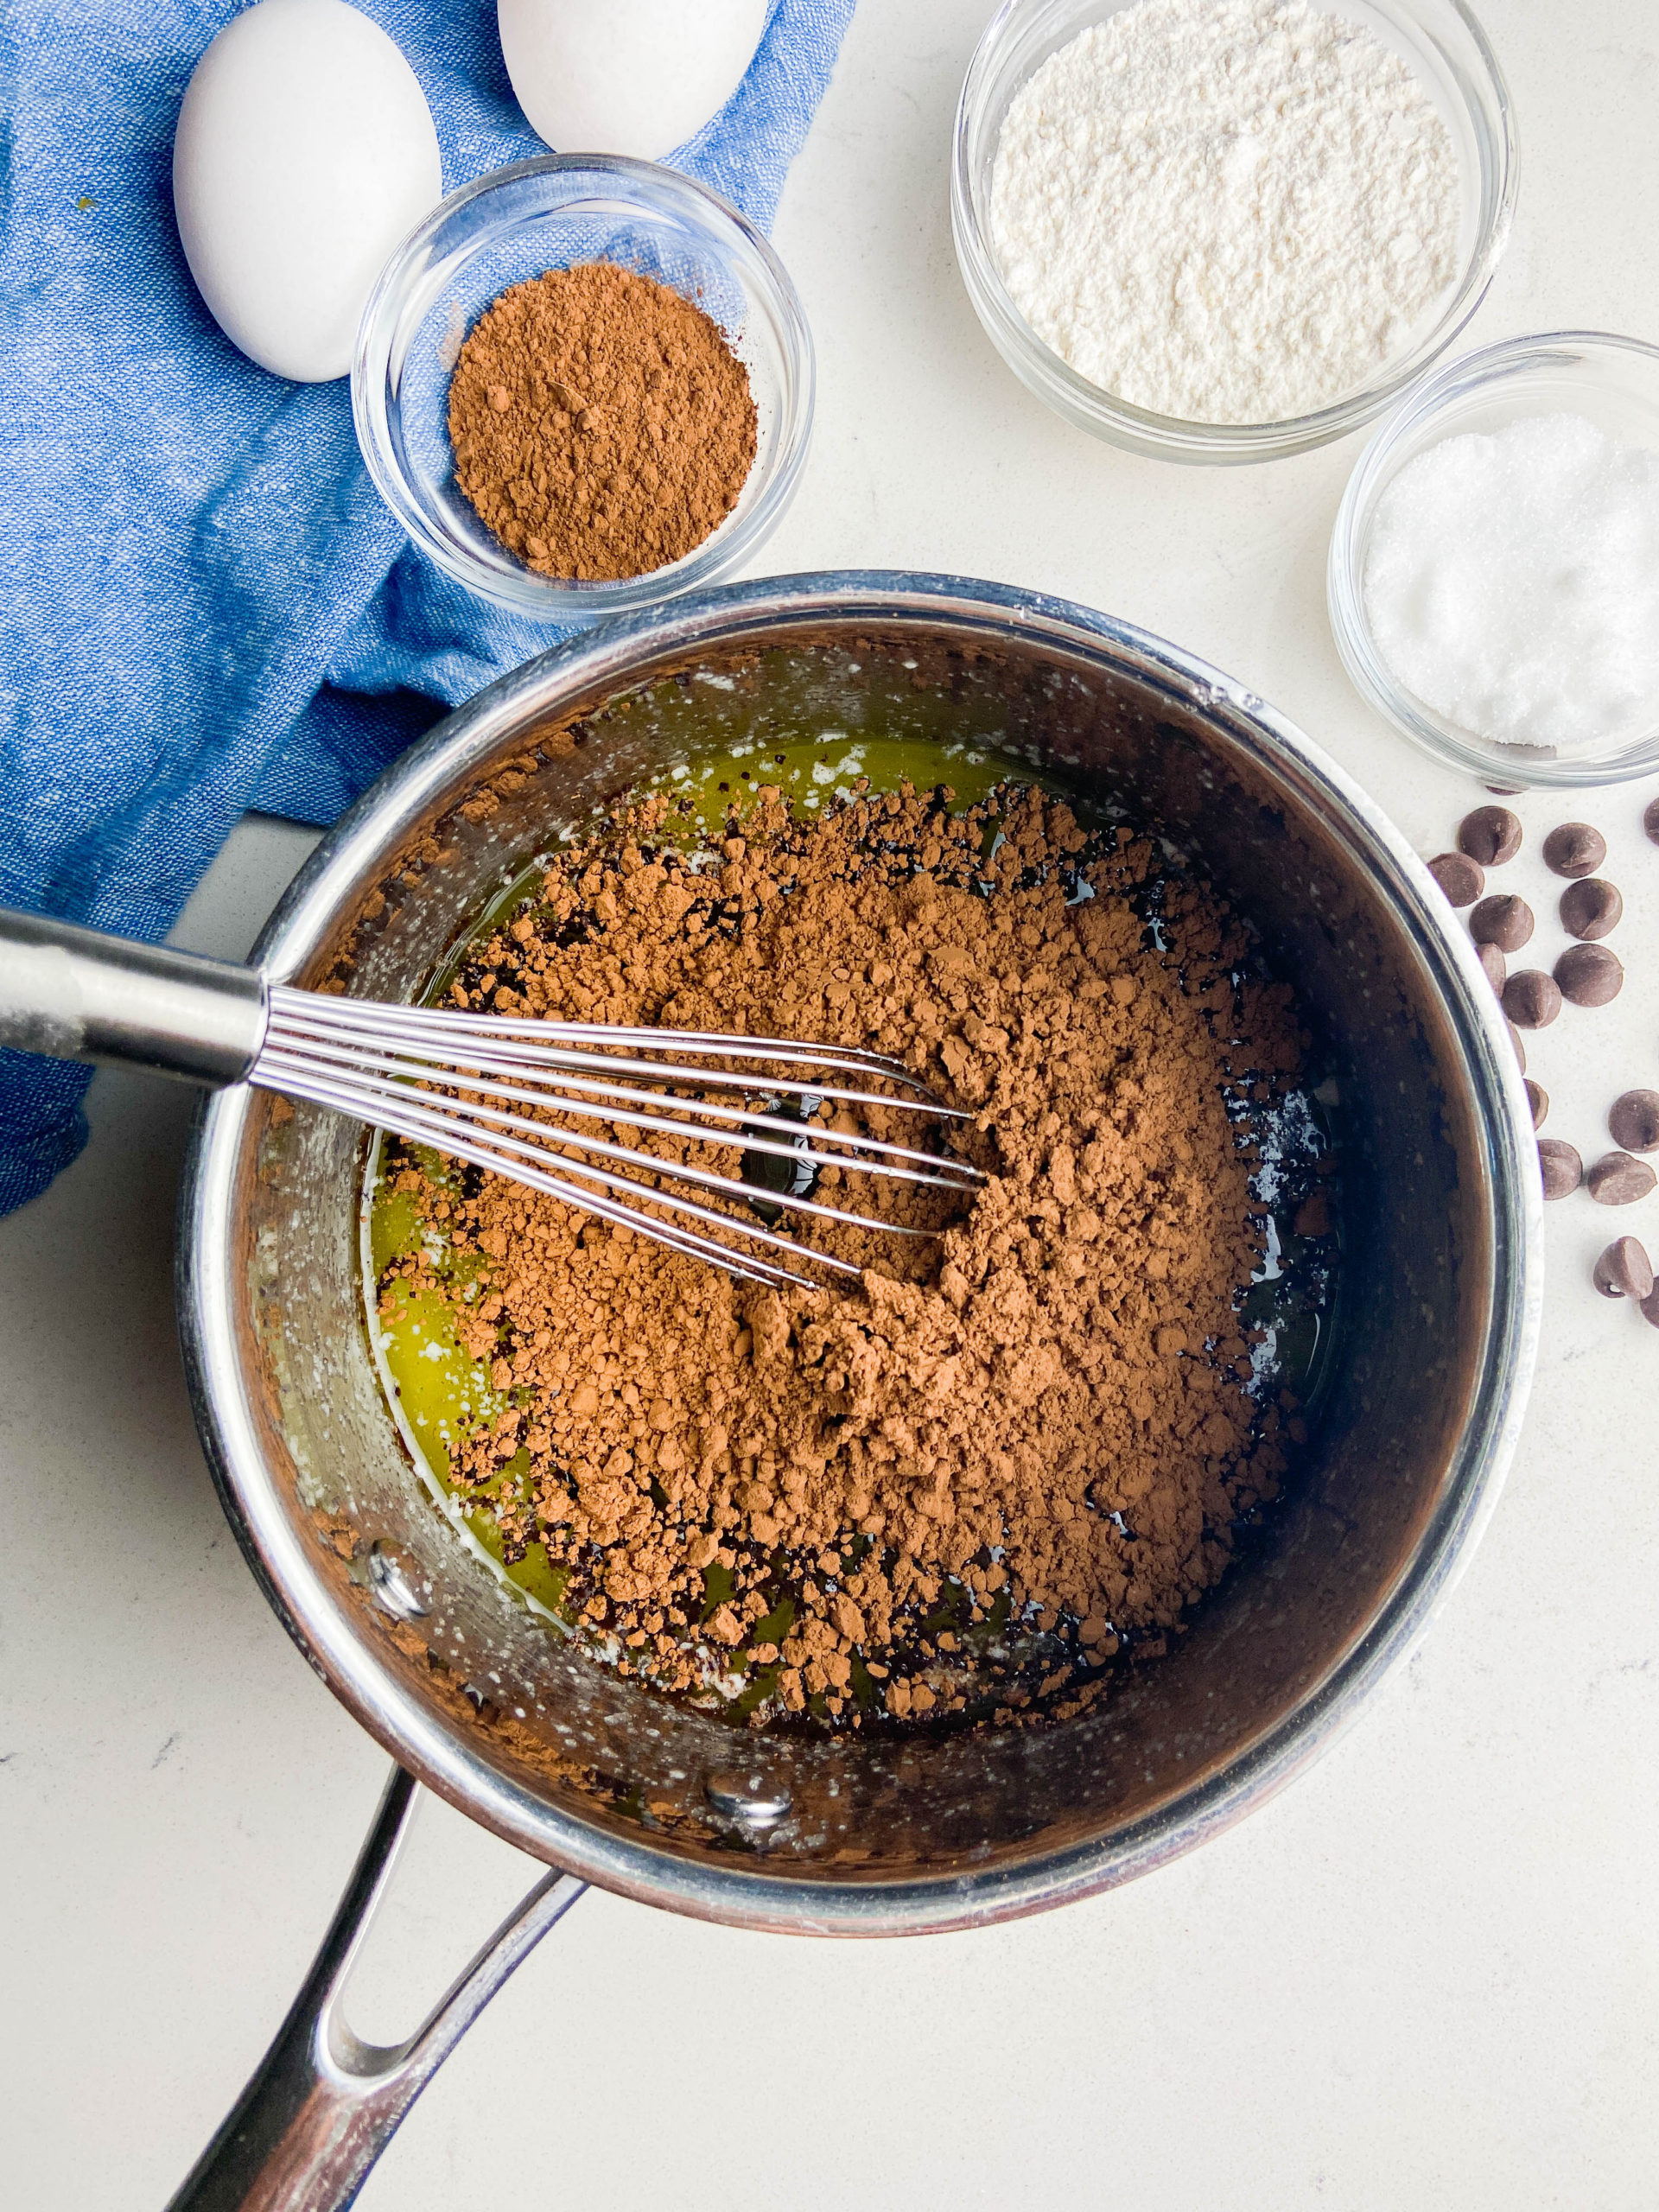 Cocoa powder in a pan.